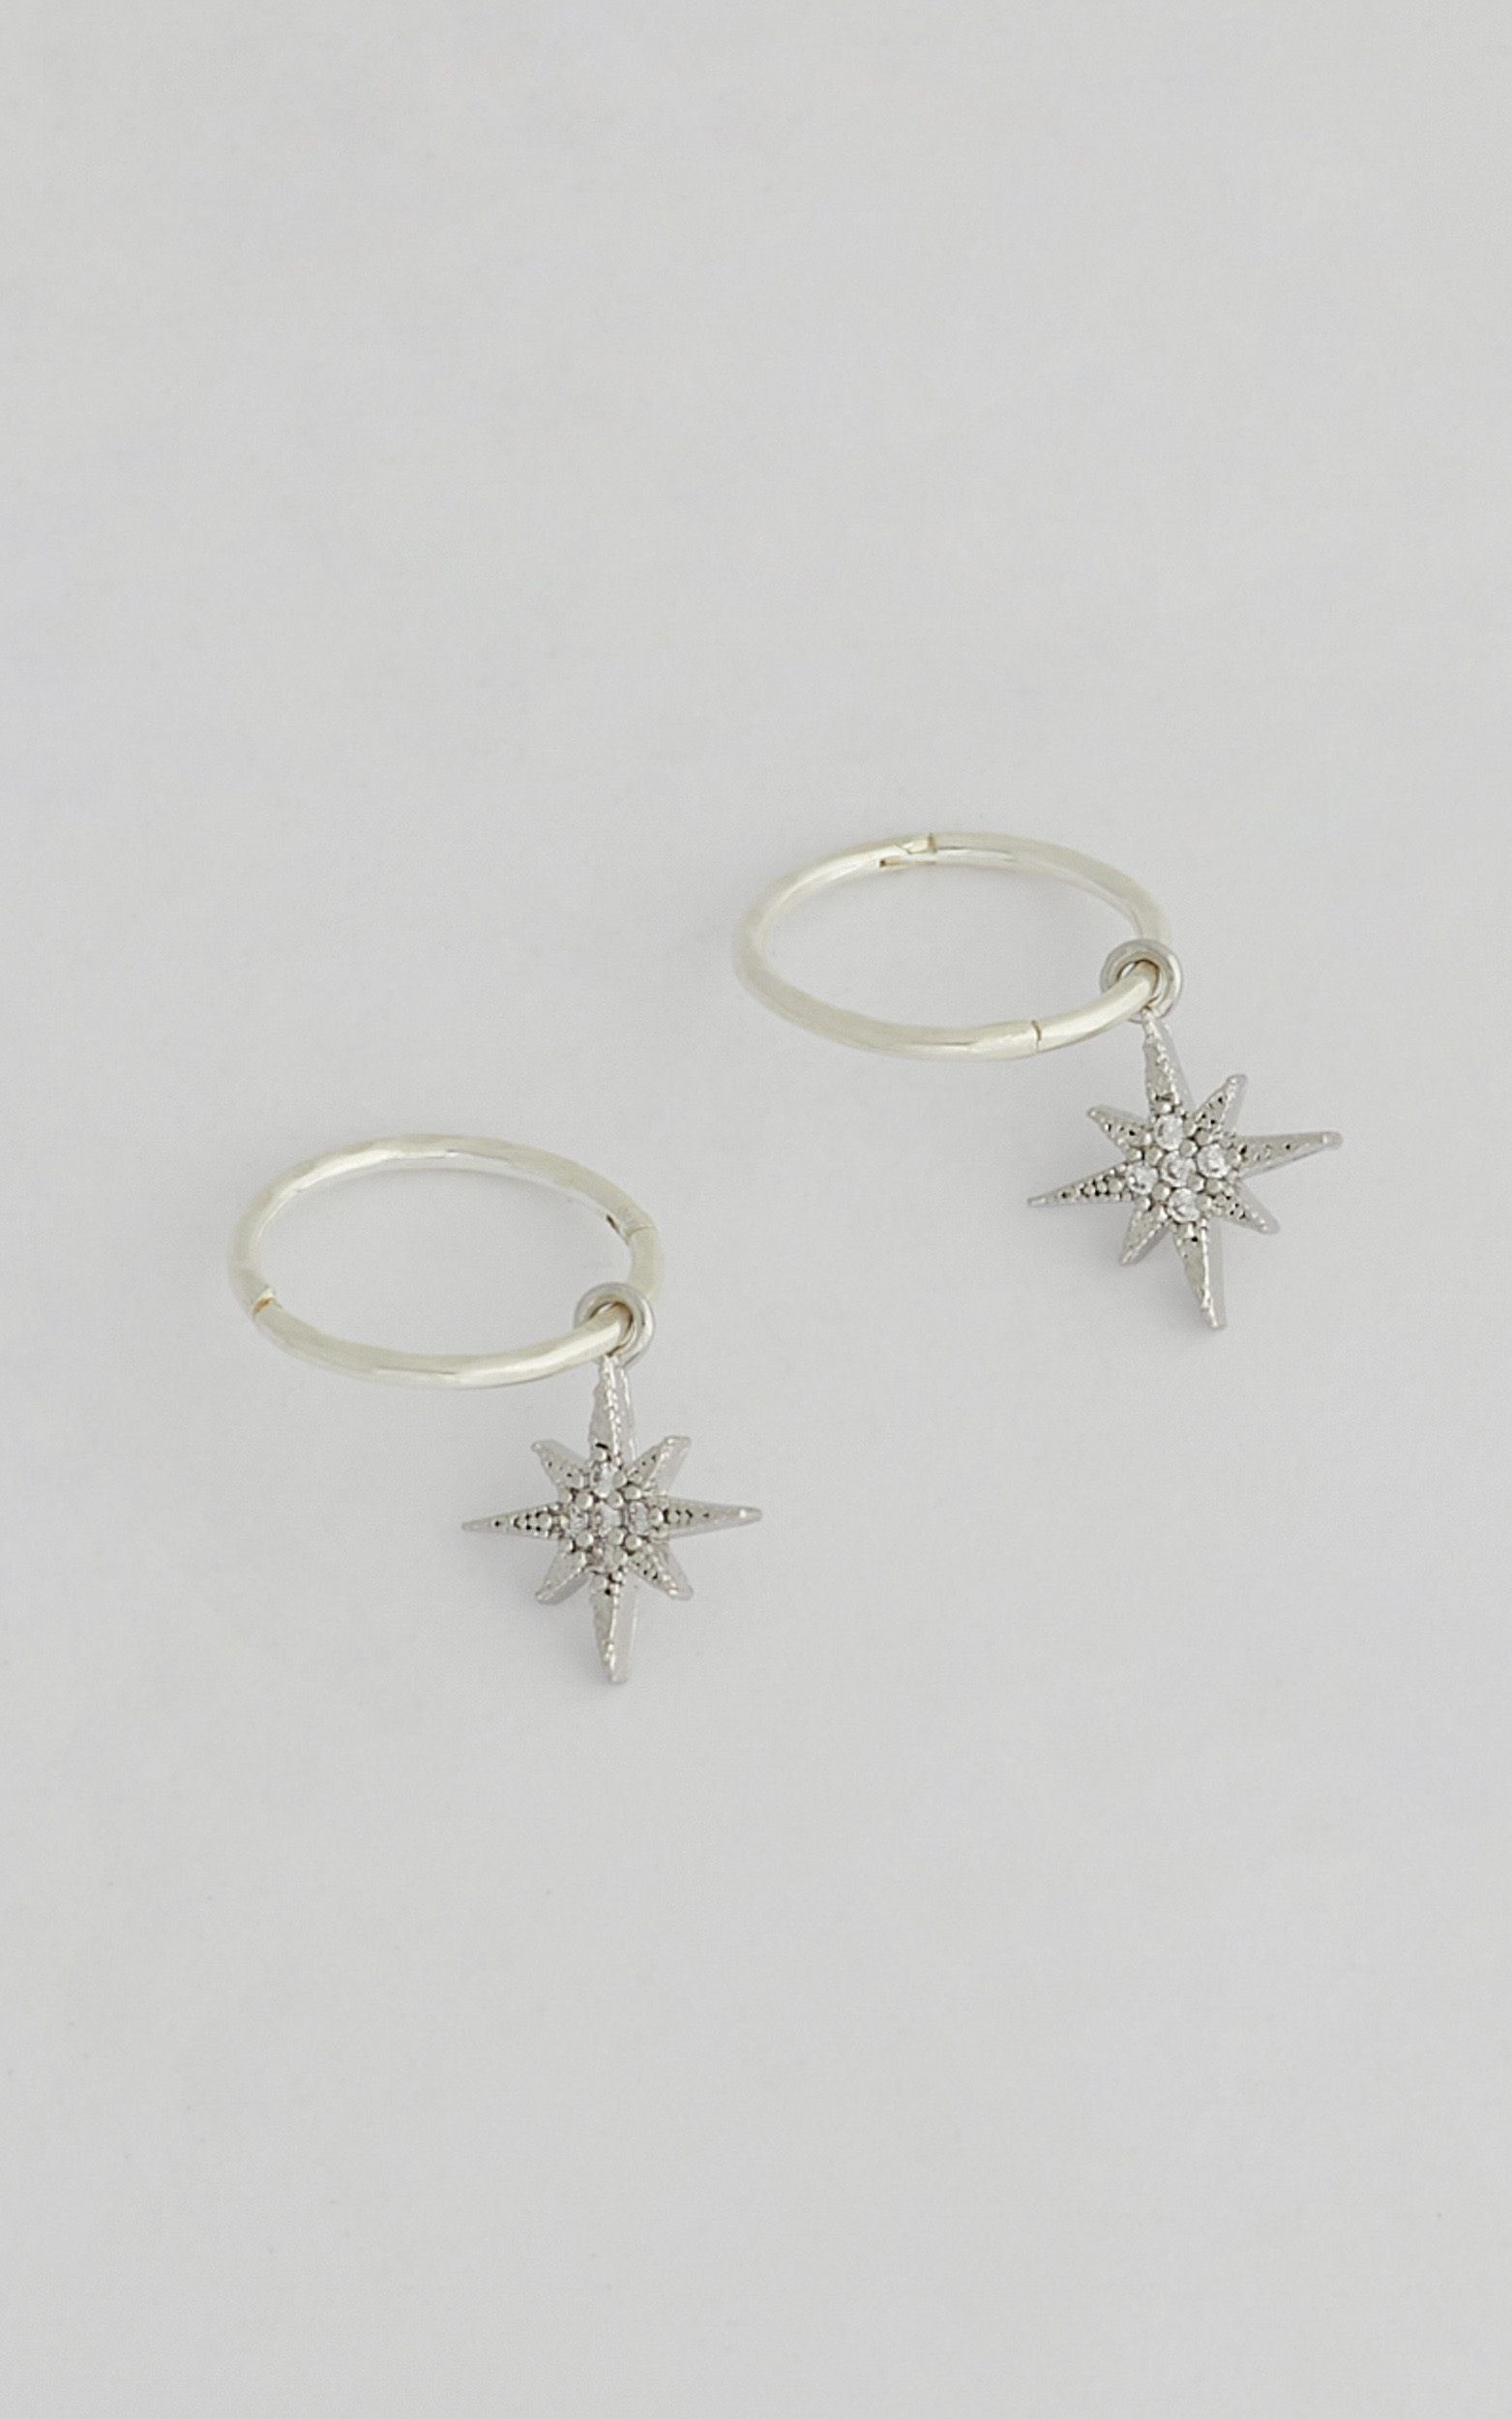 SAINT VALENTINE - NORTH STAR MINI HOOPS in Silver - NoSize, SLV2, hi-res image number null